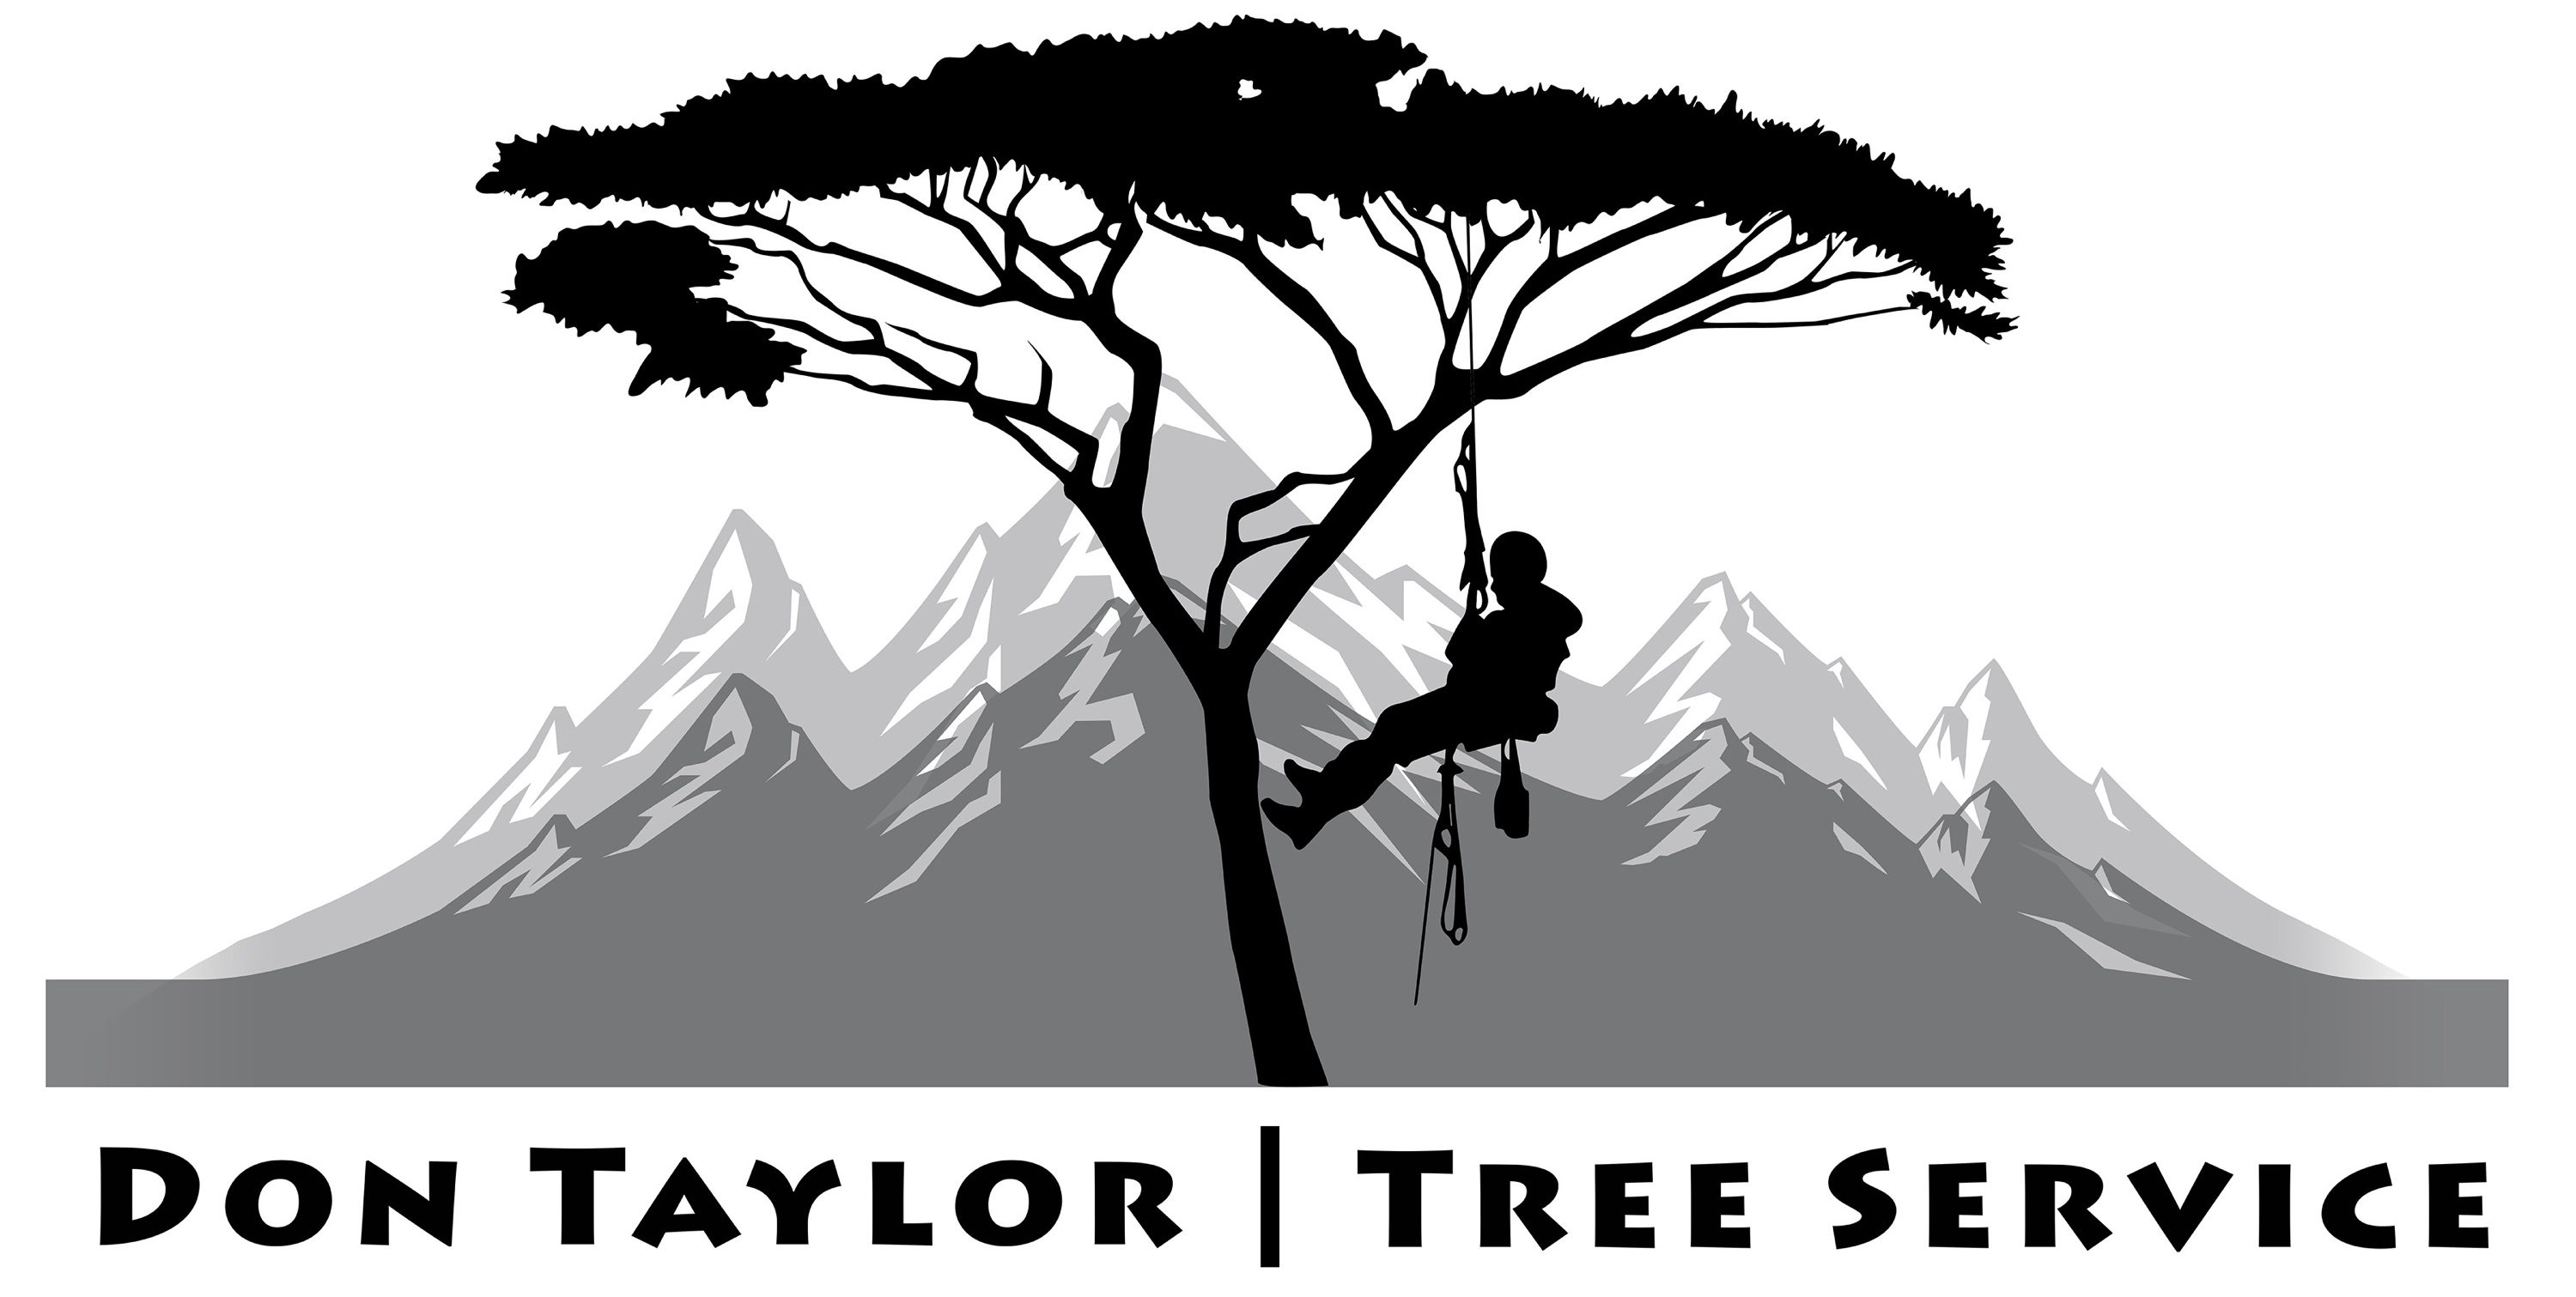 Don Taylor ISA certified arborist and tree service